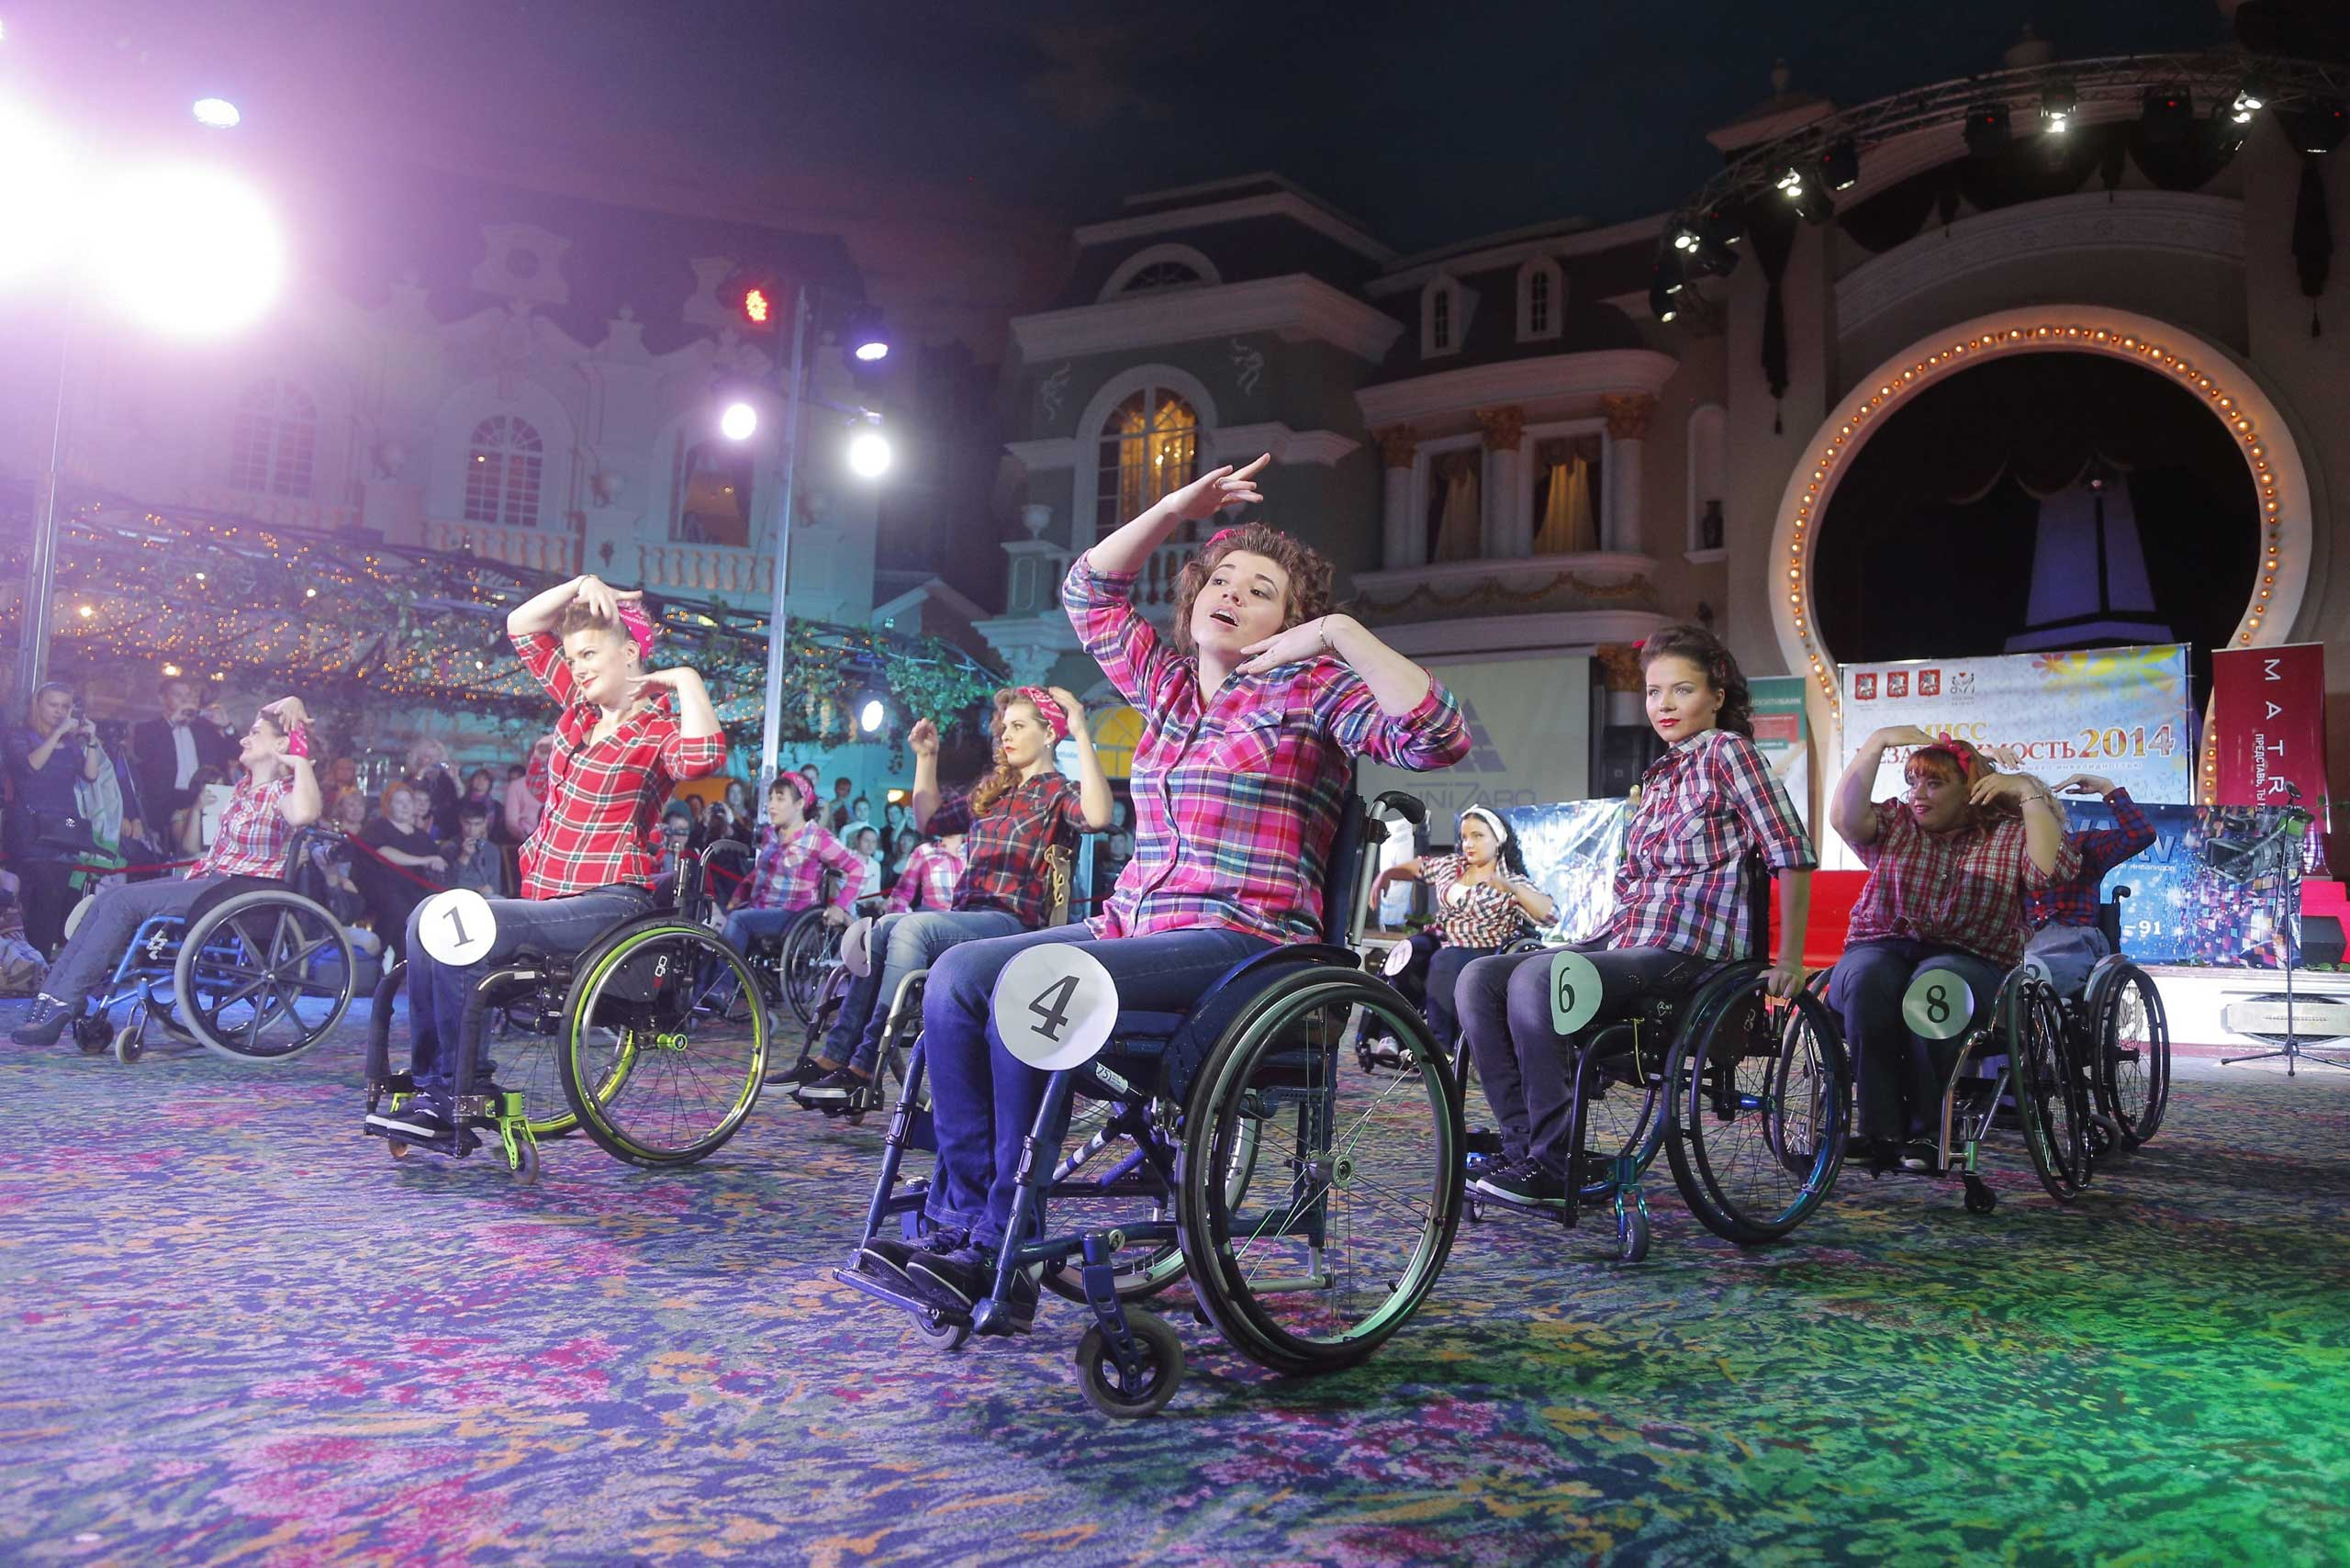 Sept. 30, 2014. Women in wheelchairs dance during the Miss Independence 2014 beauty contest in Moscow, Russia. The beauty contest is organized to increase awareness of women with disabilities.